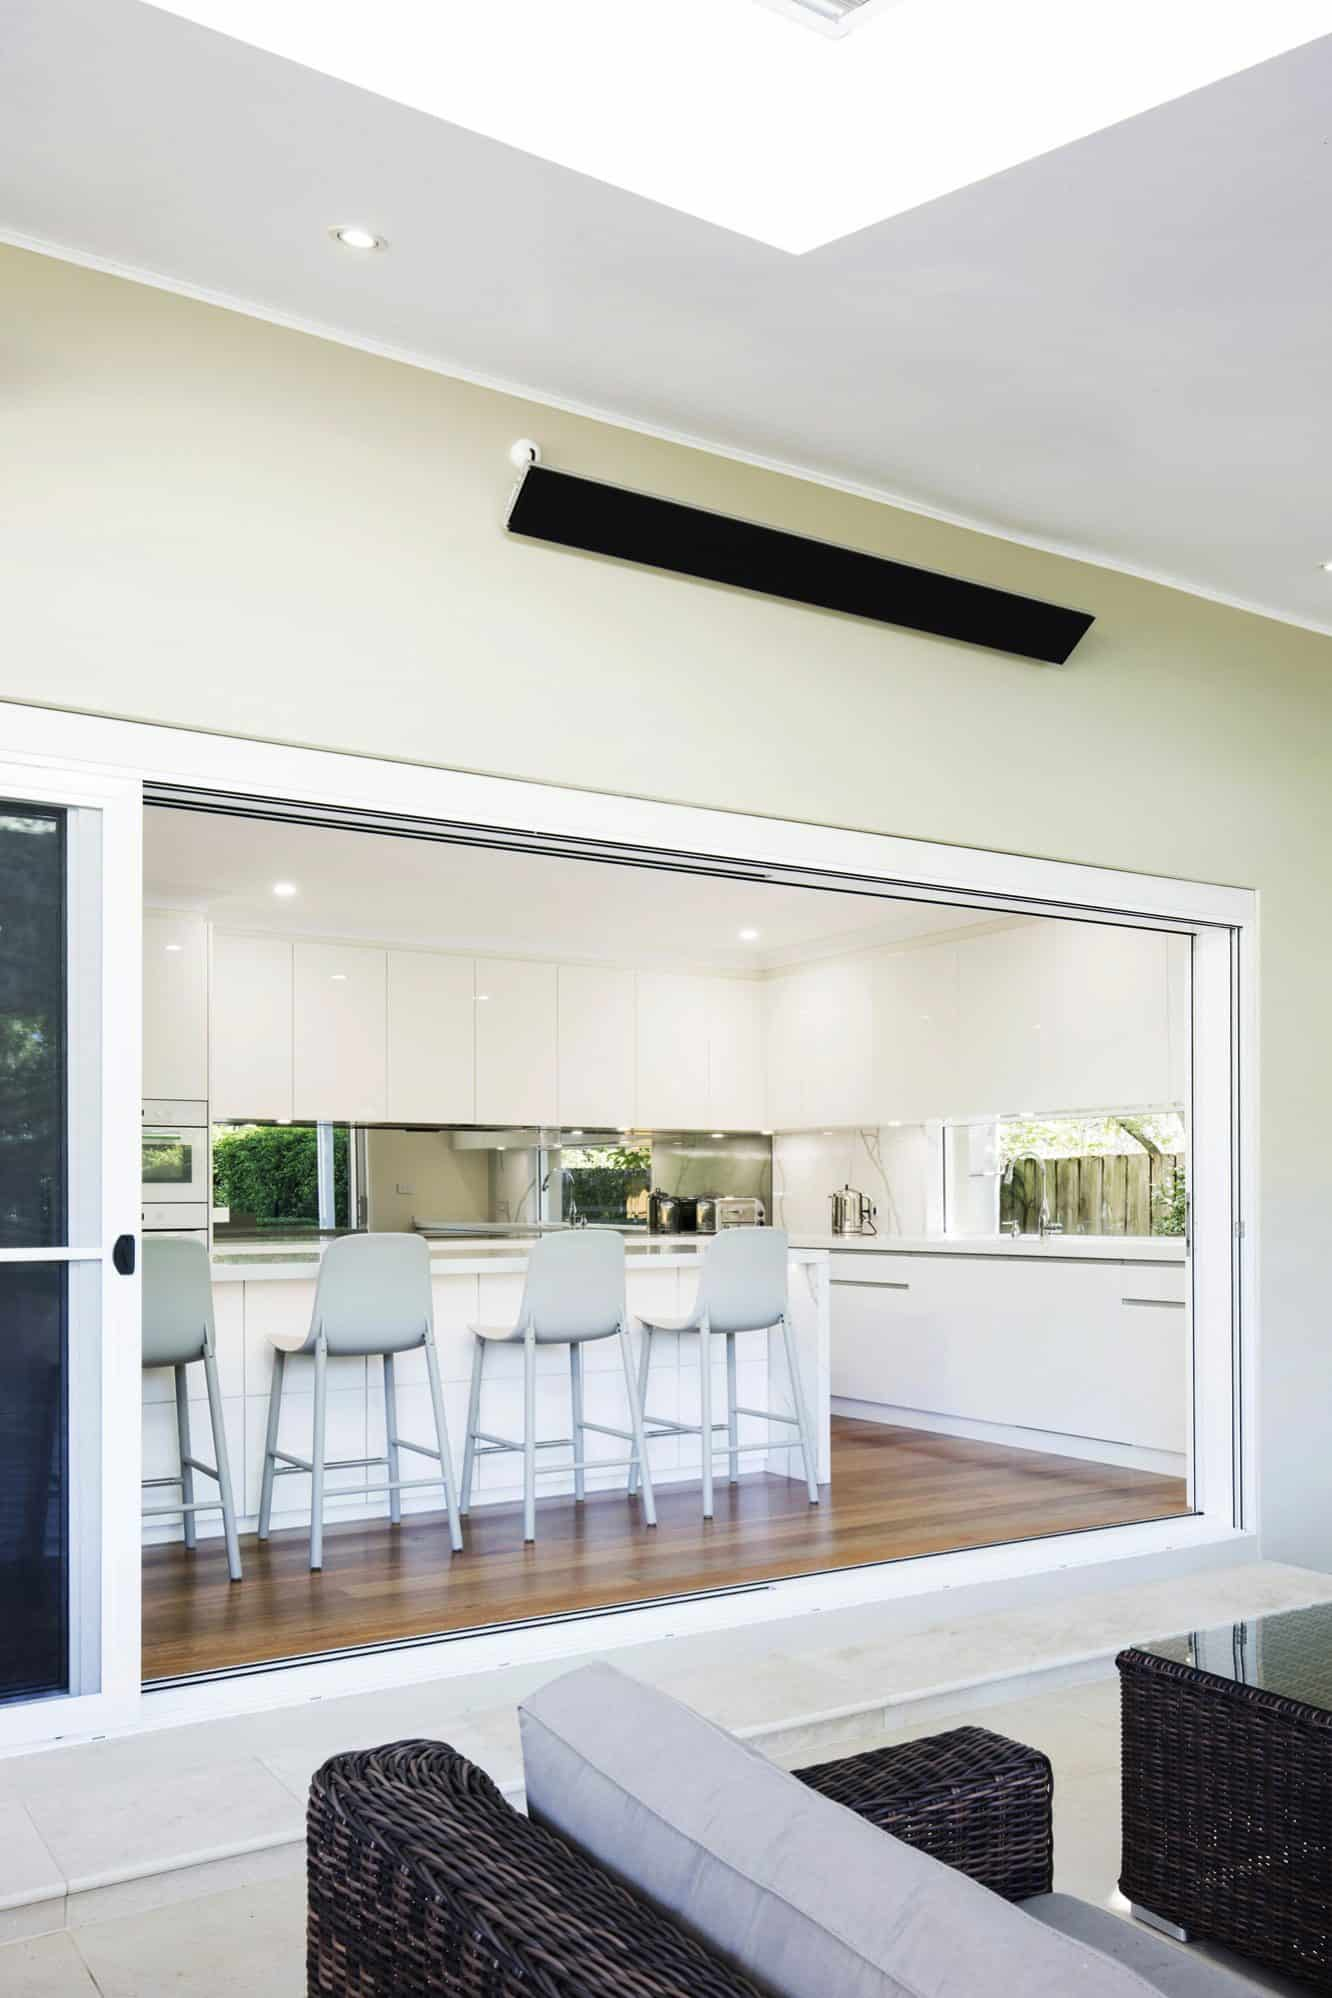 The kitchen is adjacent to the Entertaining Area